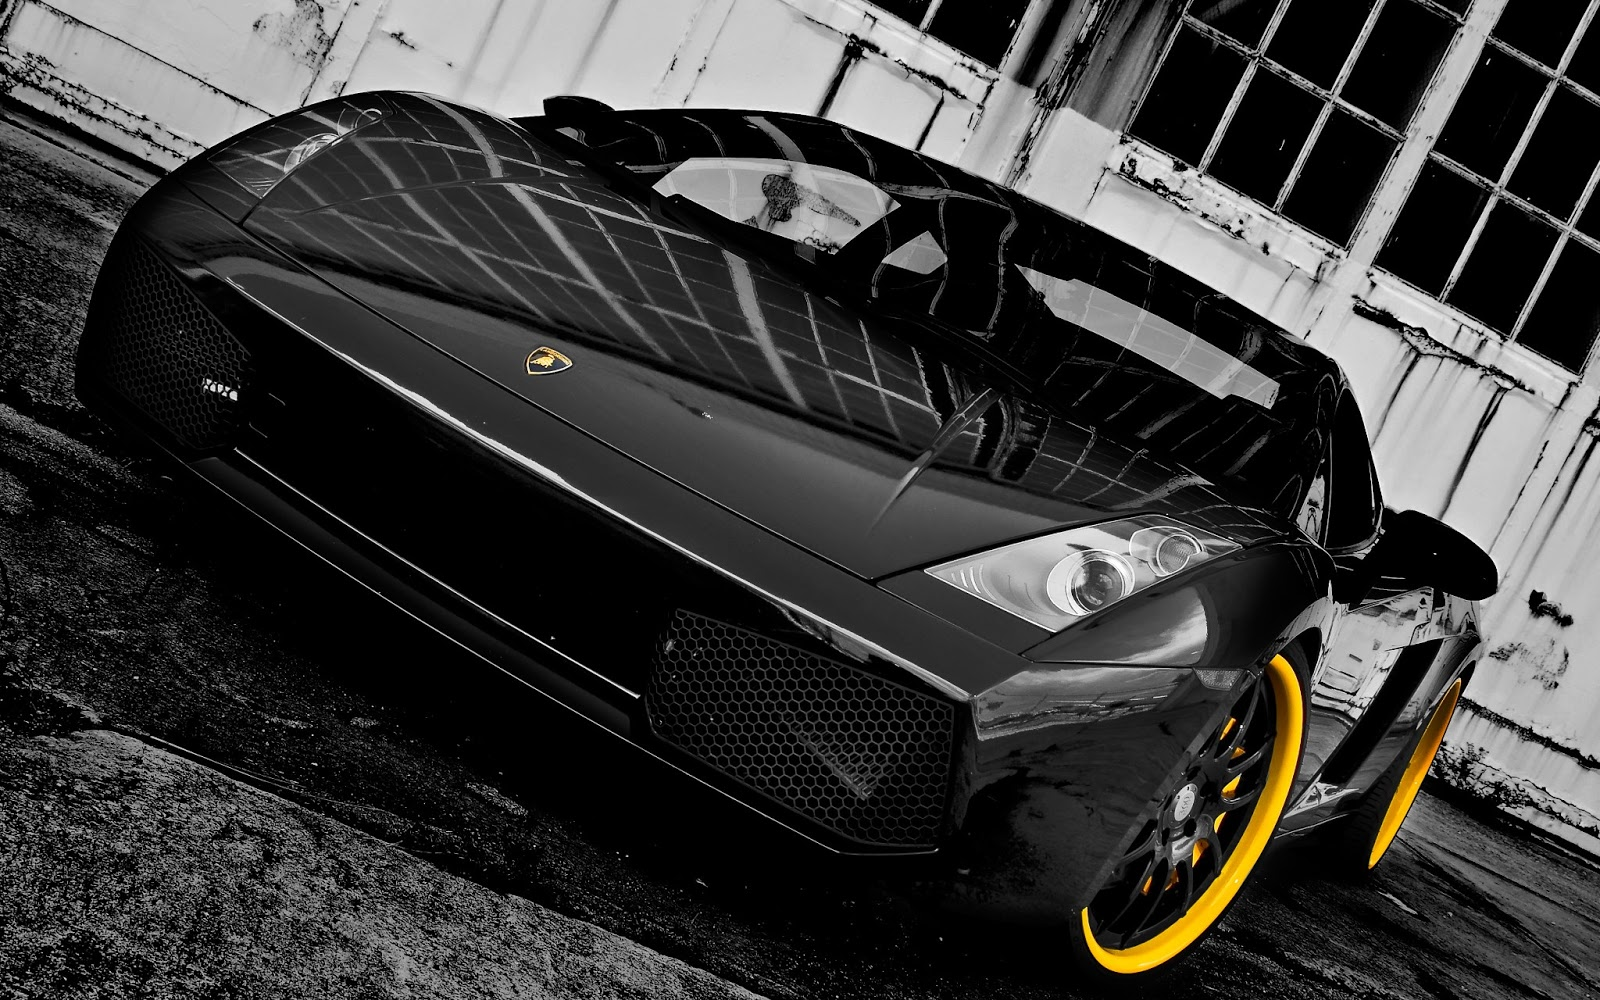 Luxury Lamborghini Cars Lamborghini Gallardo Black